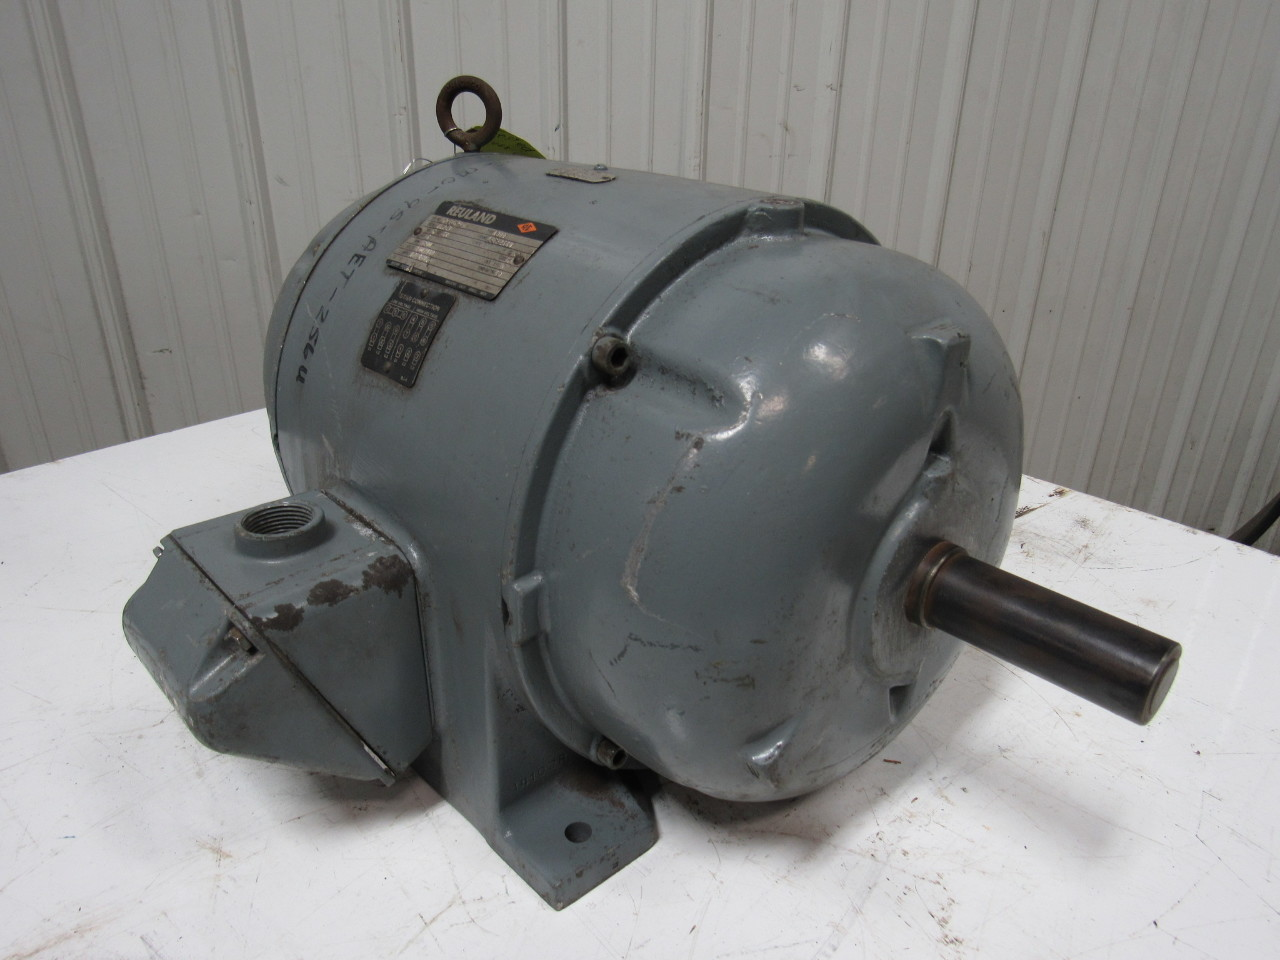 Reuland 11124 5hp electric motor 3ph 230 460v 1200 rpm aft for 5hp 3ph electric motor